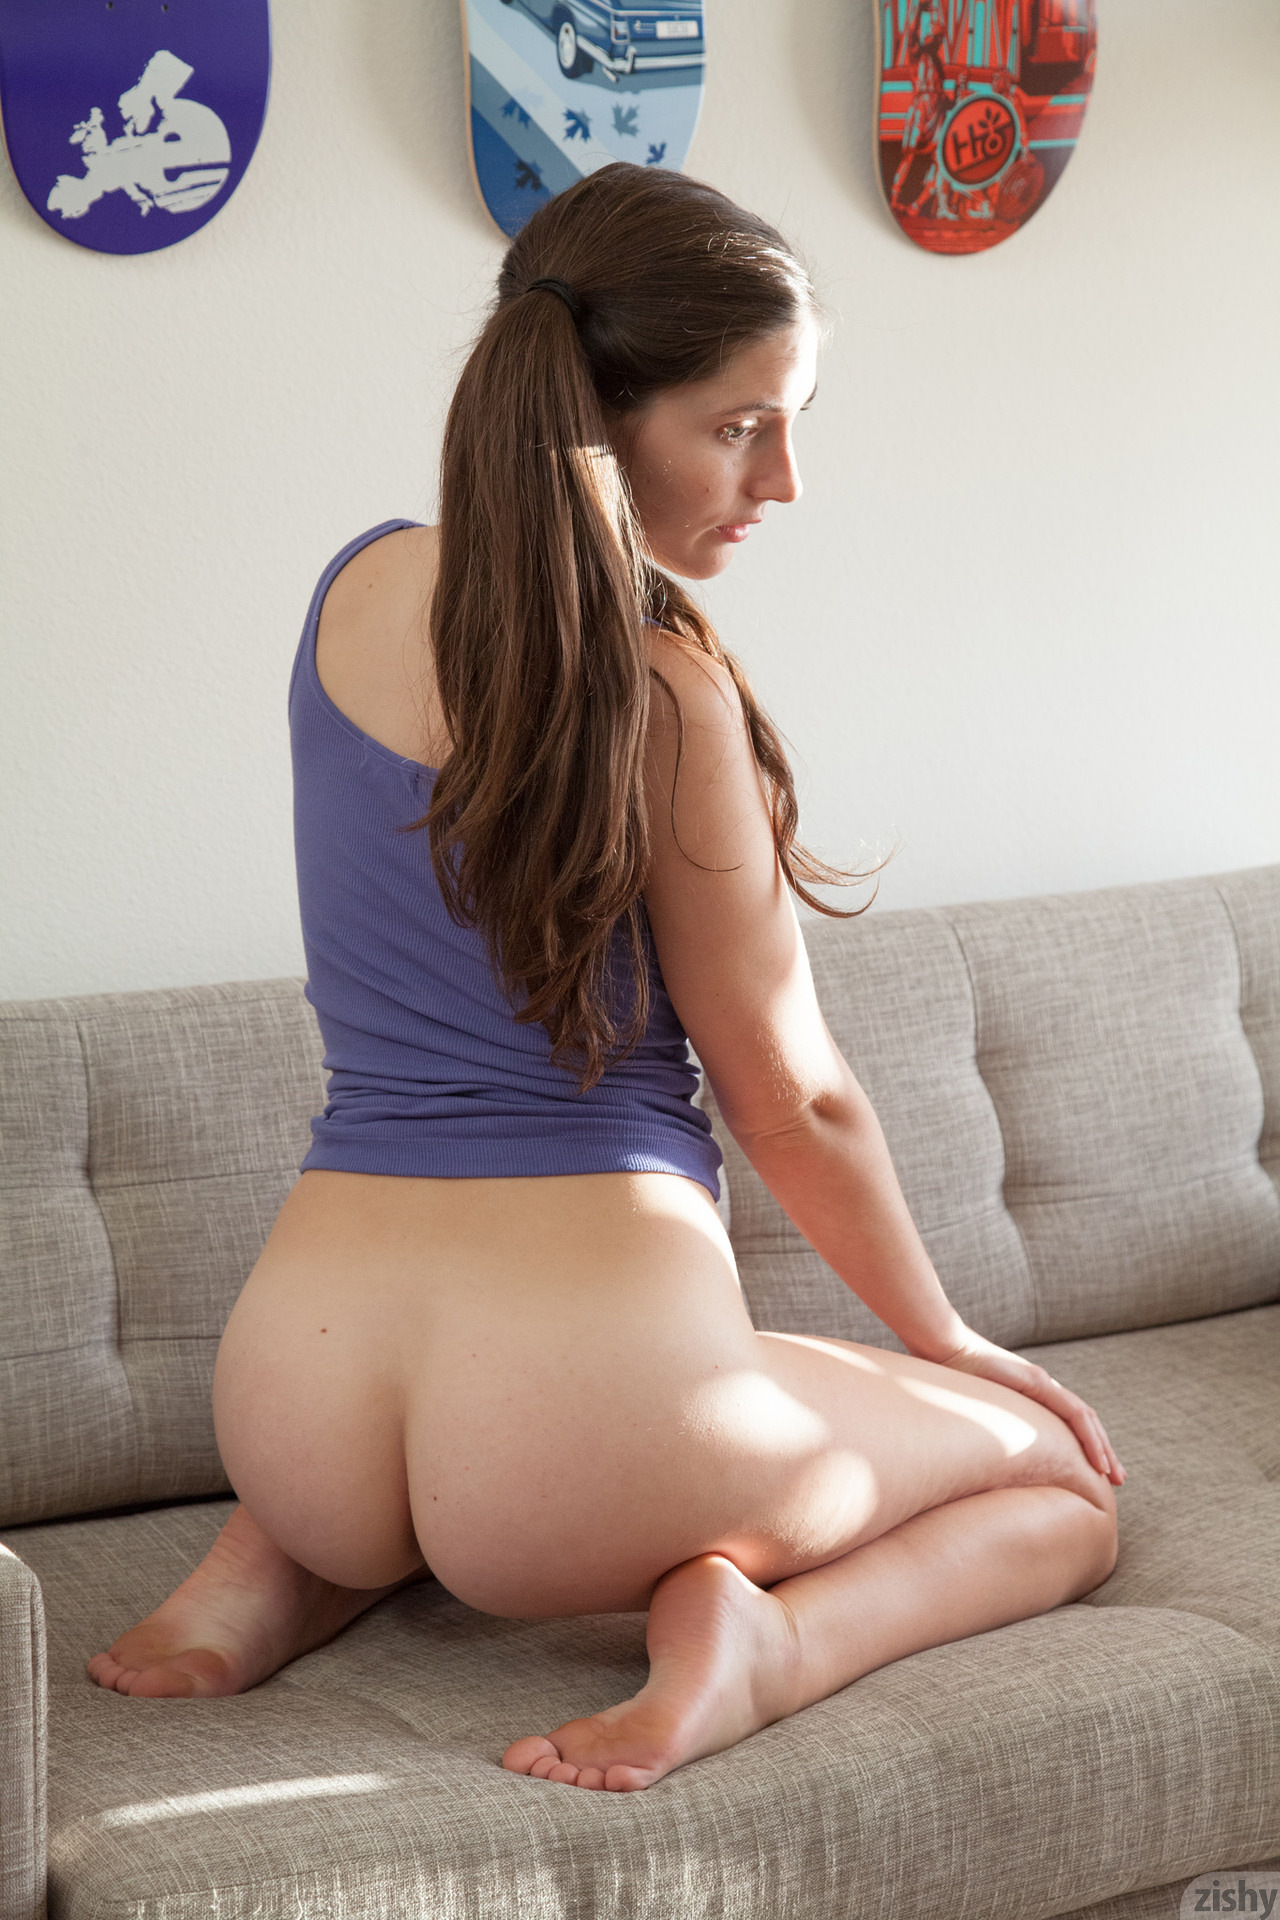 image Pissing in purple panties with a camel toe